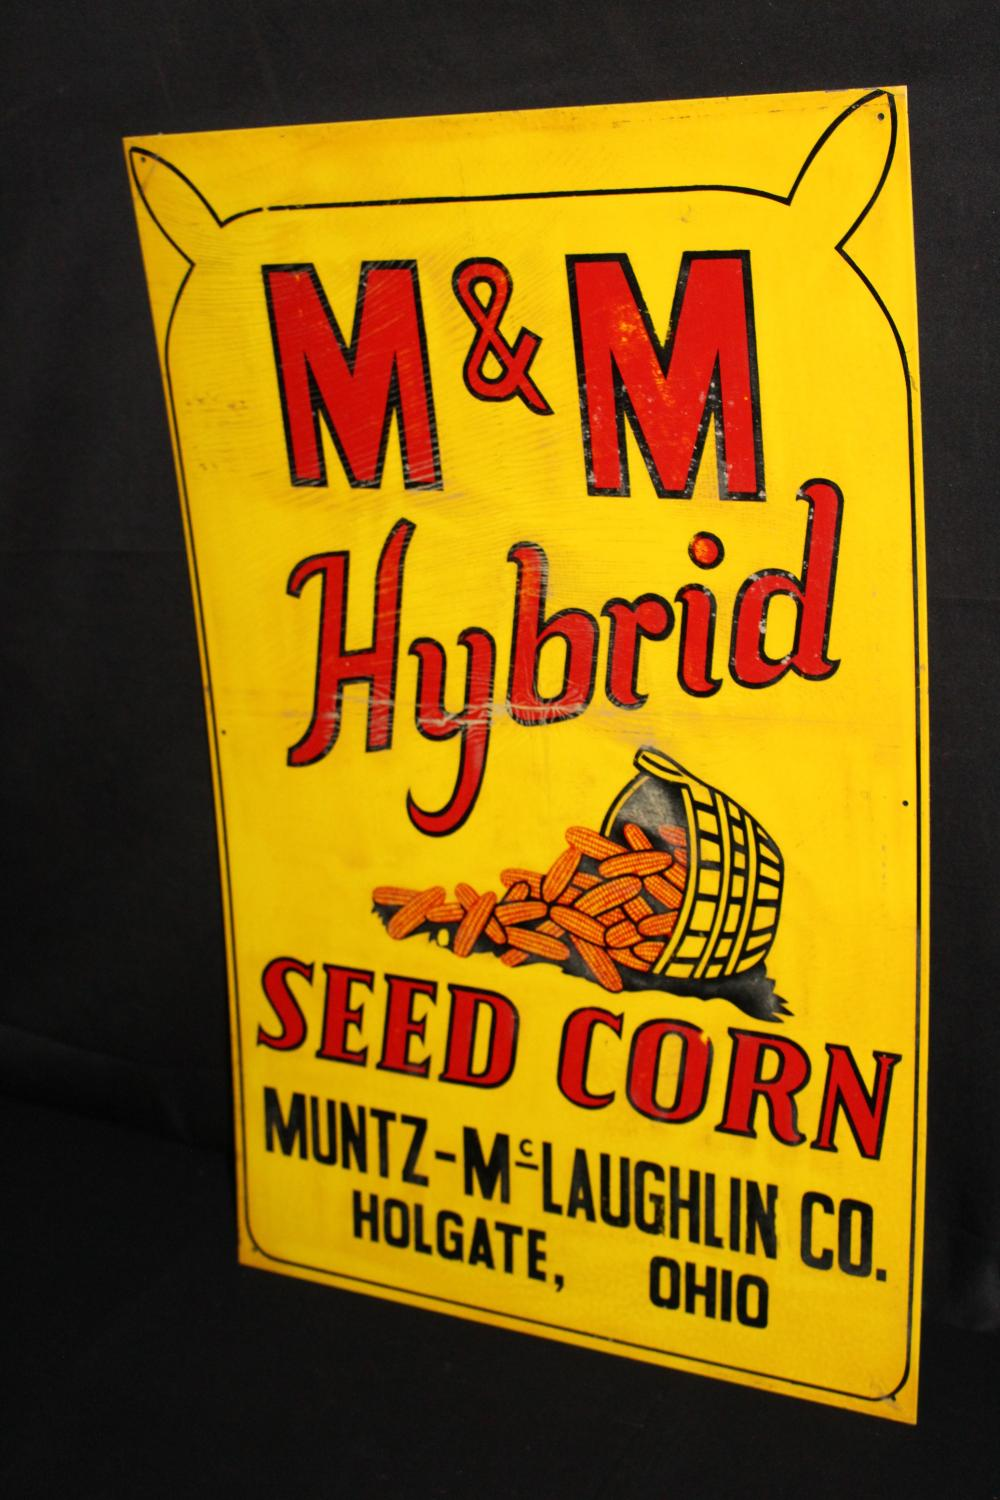 M&M HYBRID SEED CORN SIGN HOLGATE OHIO